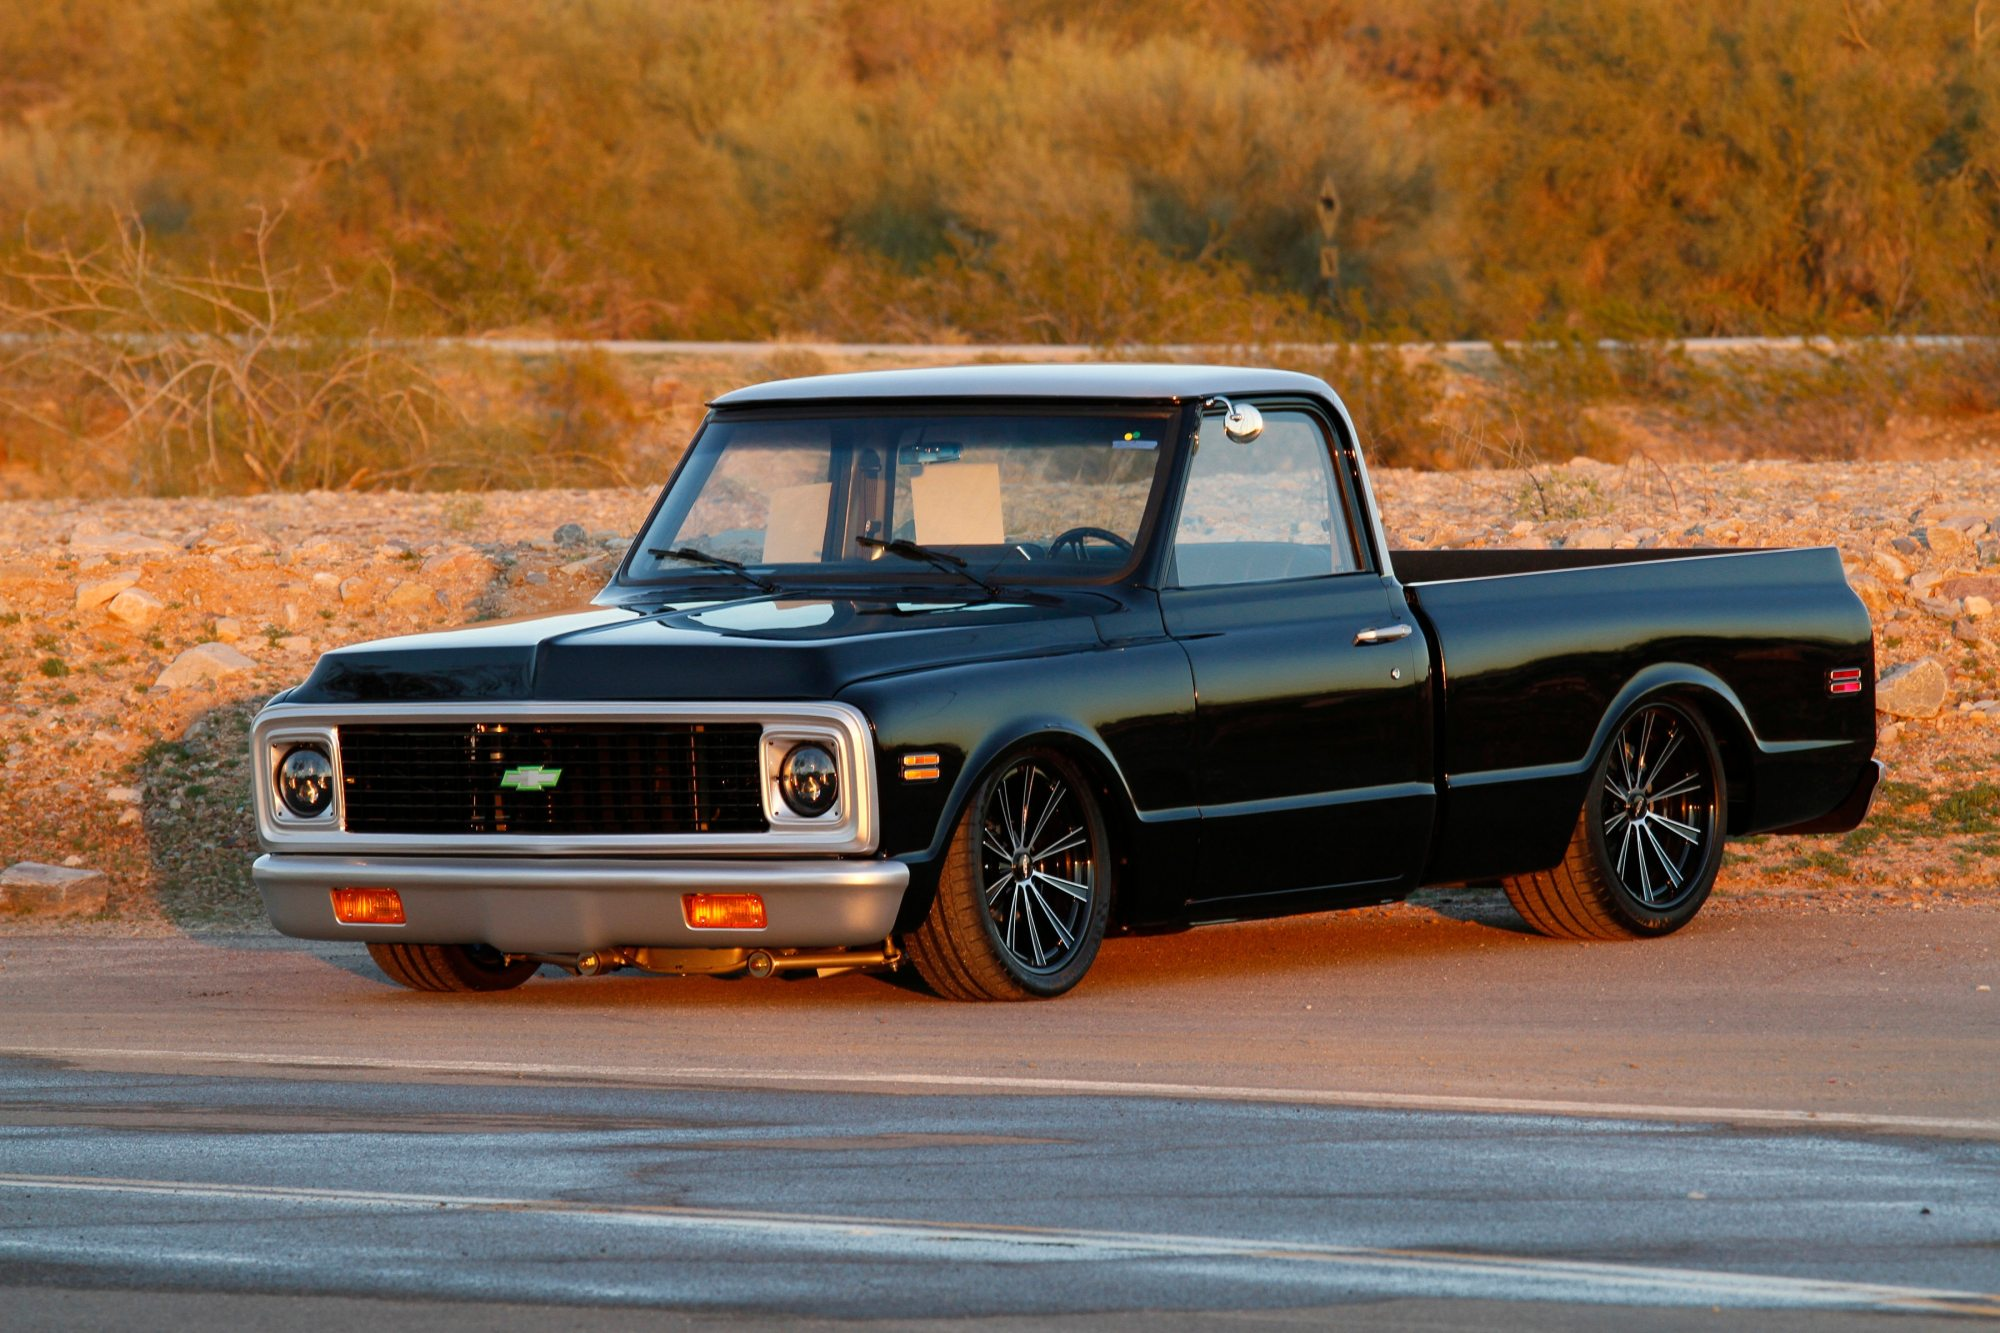 hight resolution of this 1971 chevrolet c 10 custom pickup lovingly called adel by its previous owners sold for 110 000 in scottsdale arizona in 2014